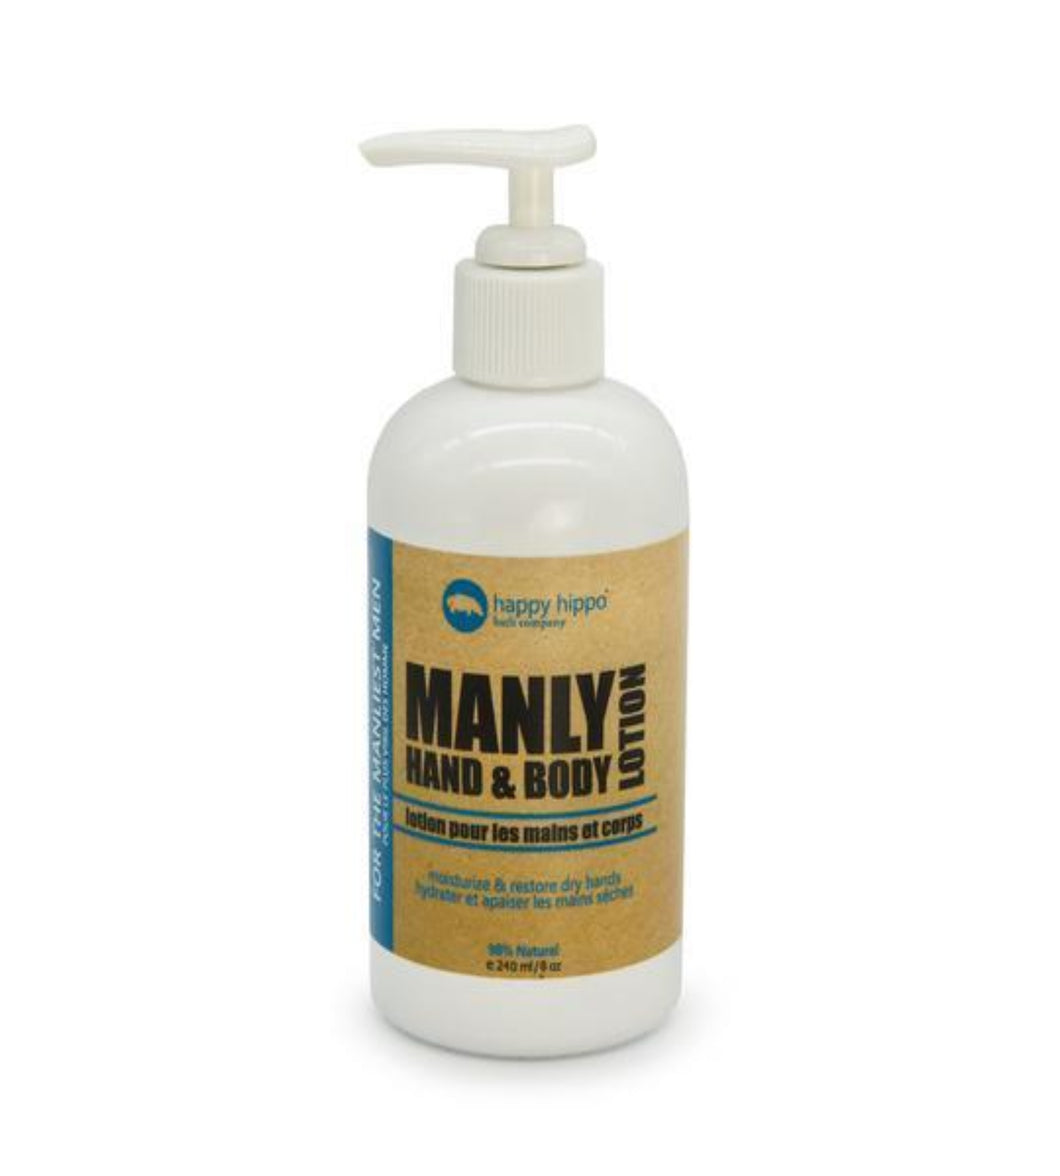 MANLY Hand and Body Lotion - Happy Hippo Bath Co.